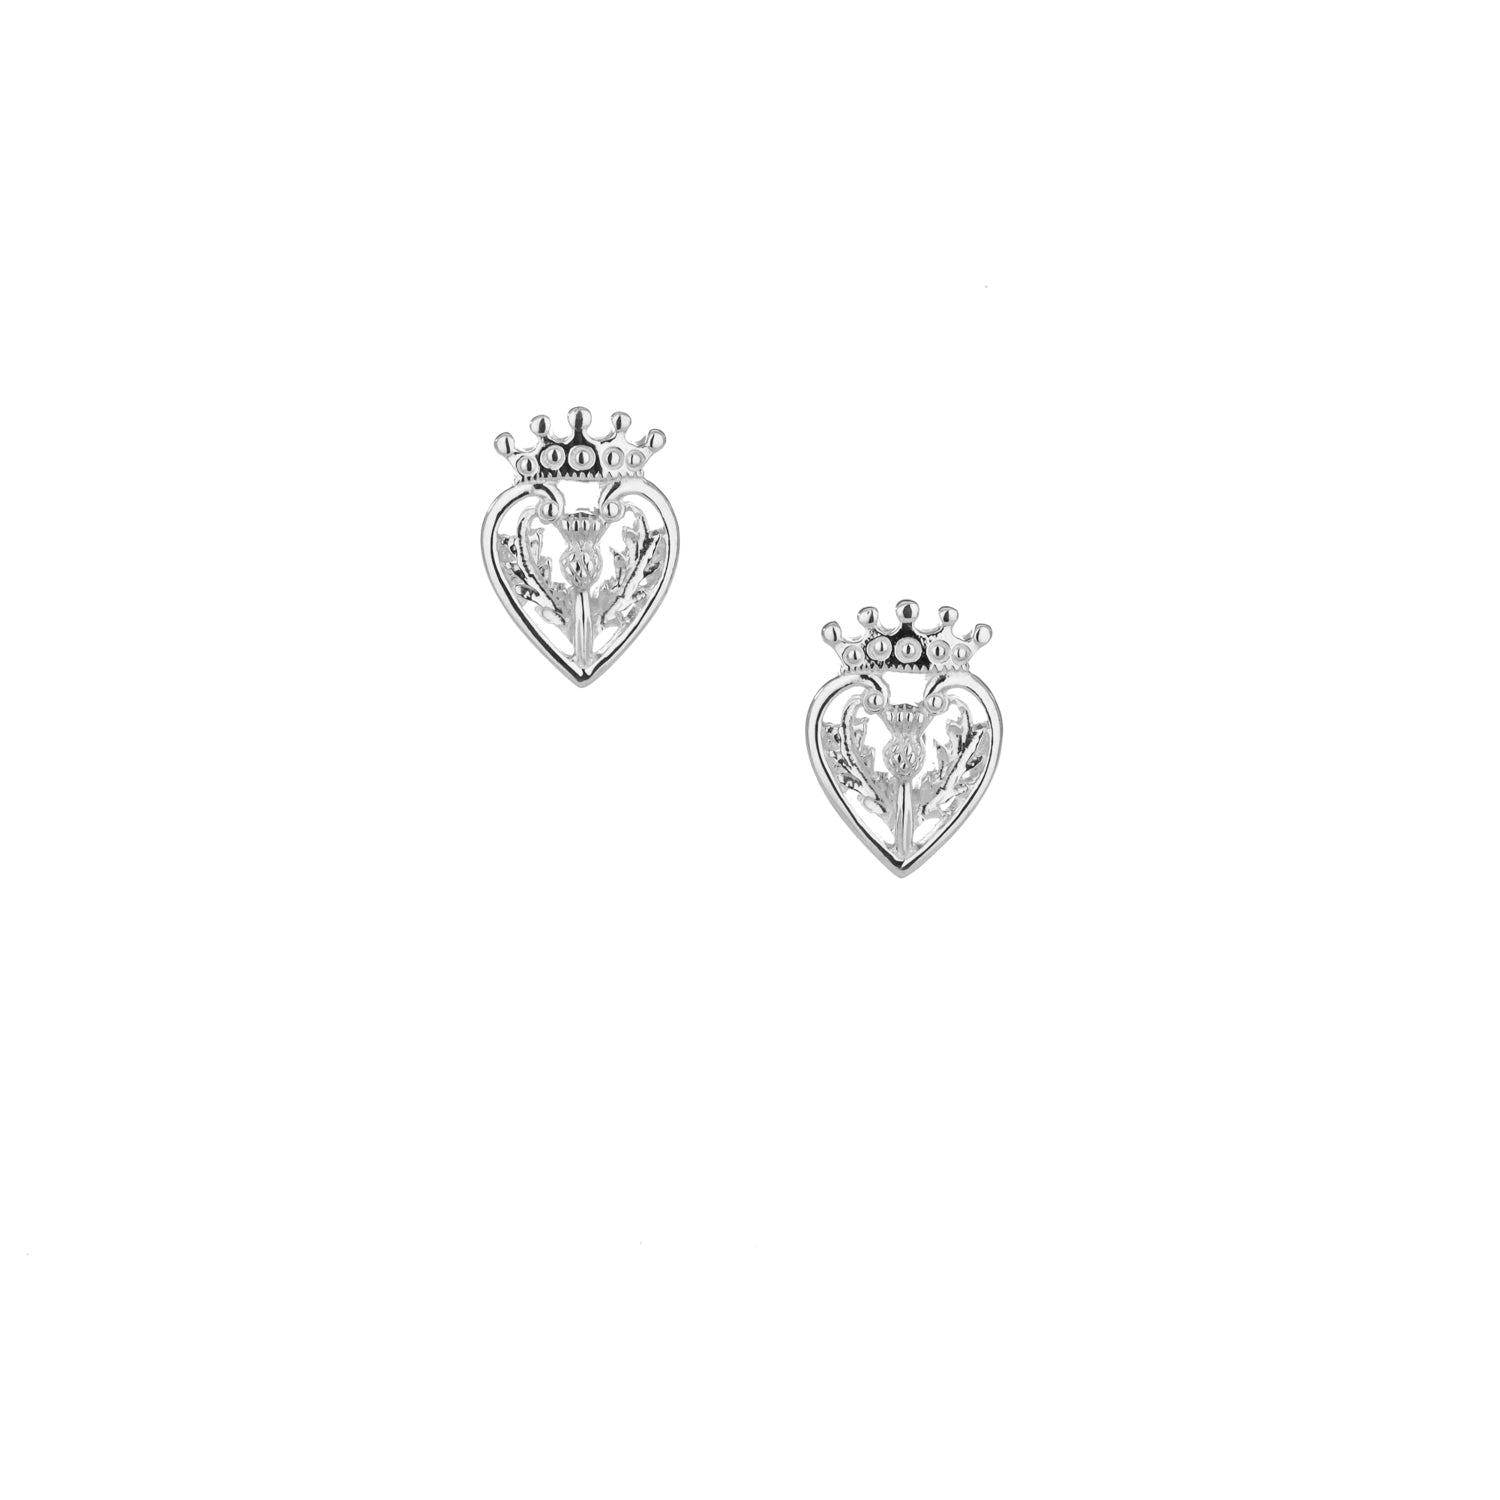 Earrings Luckenbooth Post Earrings from welch and company jewelers near syracuse ny